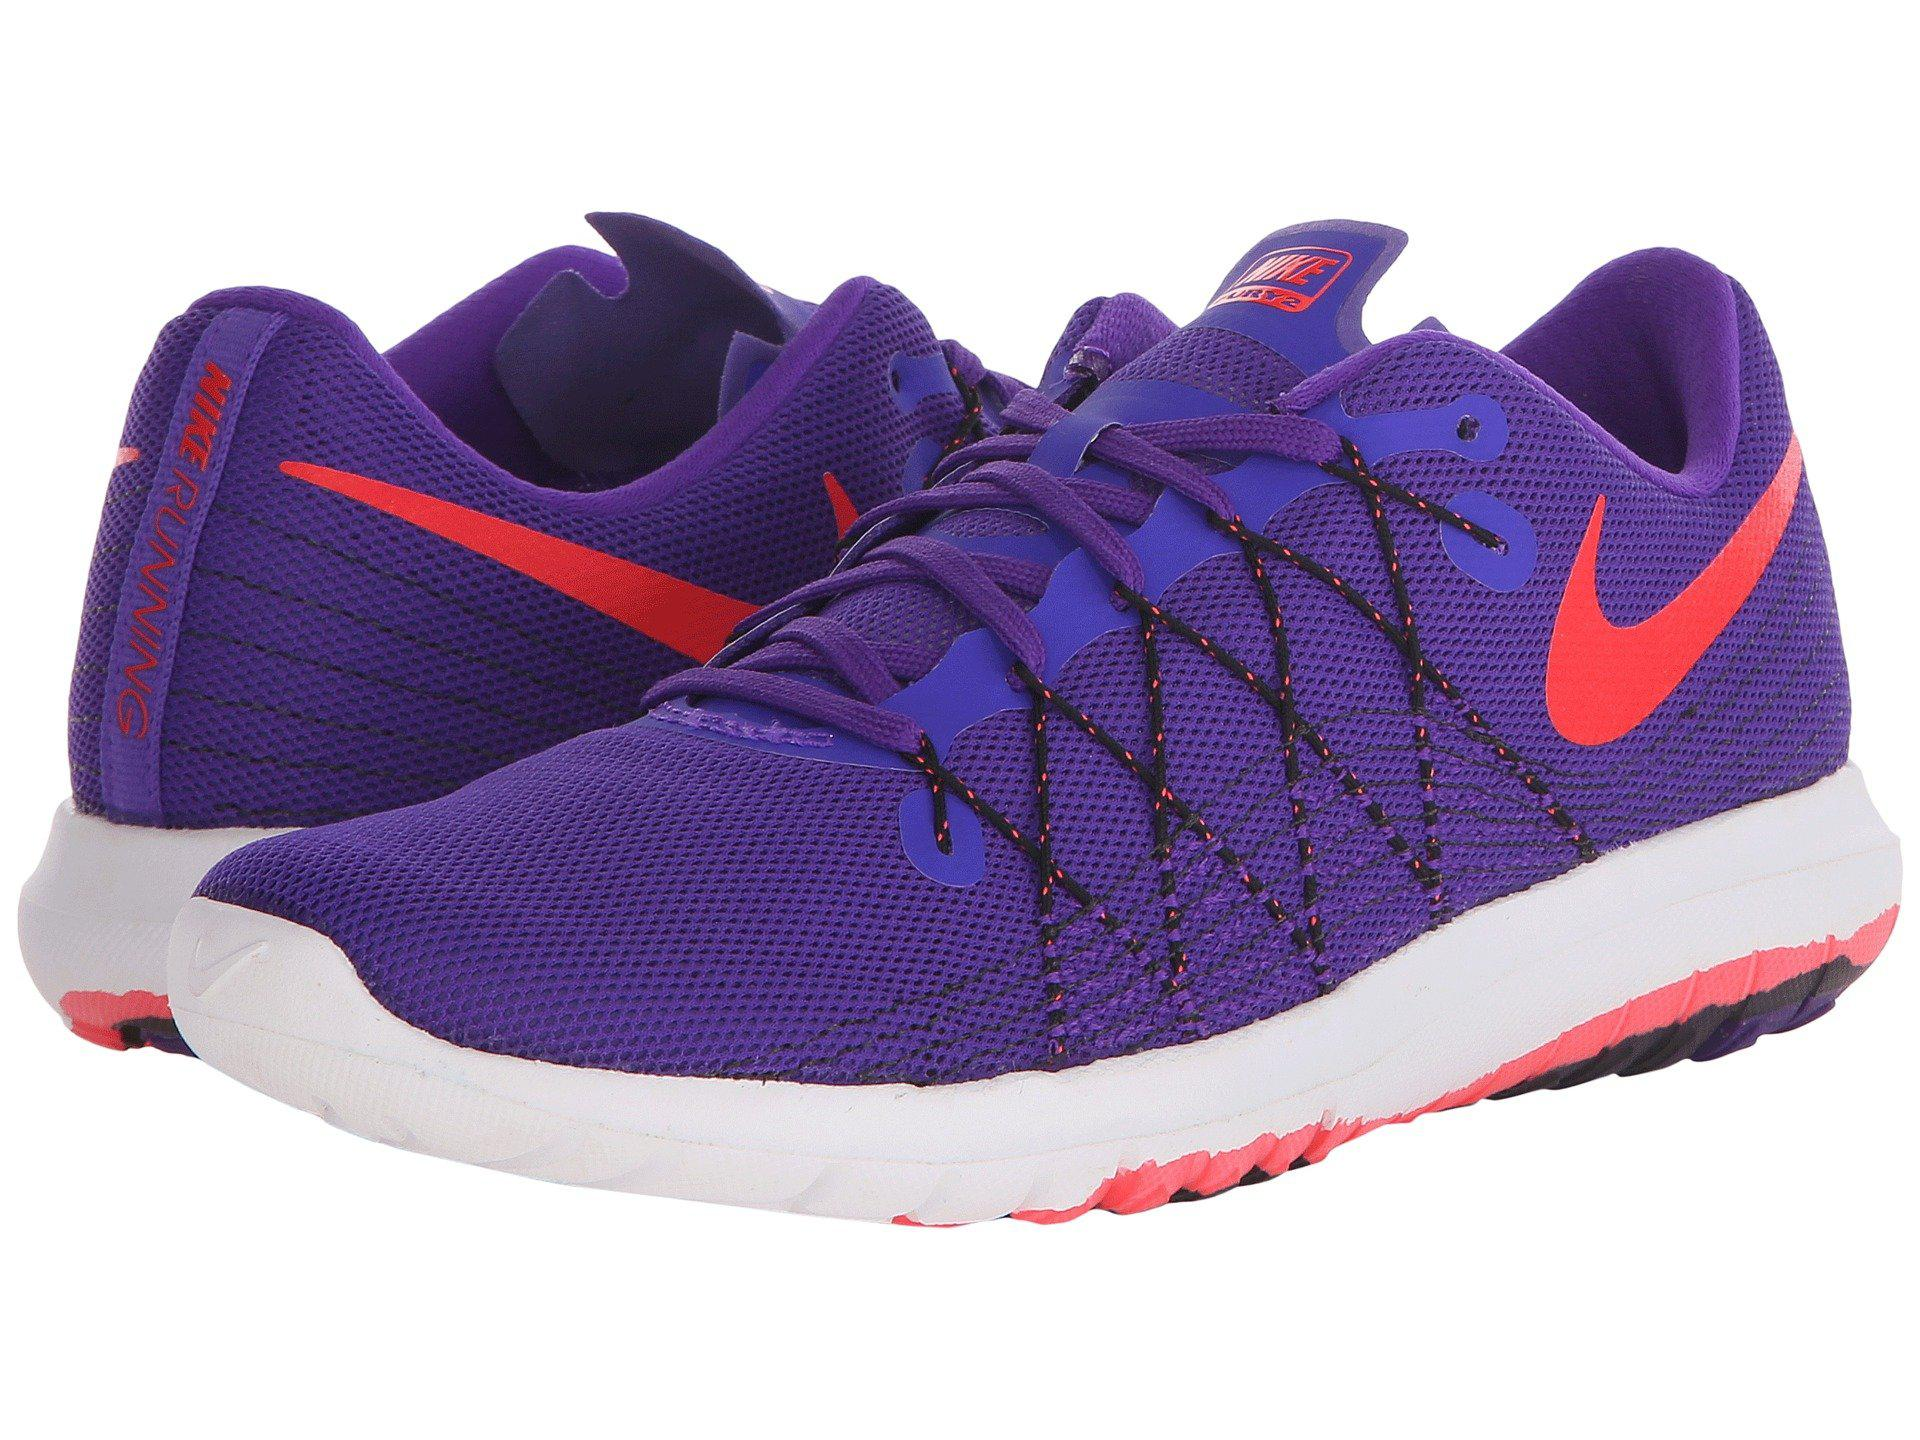 Lyst - Nike Flex Fury 2 in Purple 962fb1e66